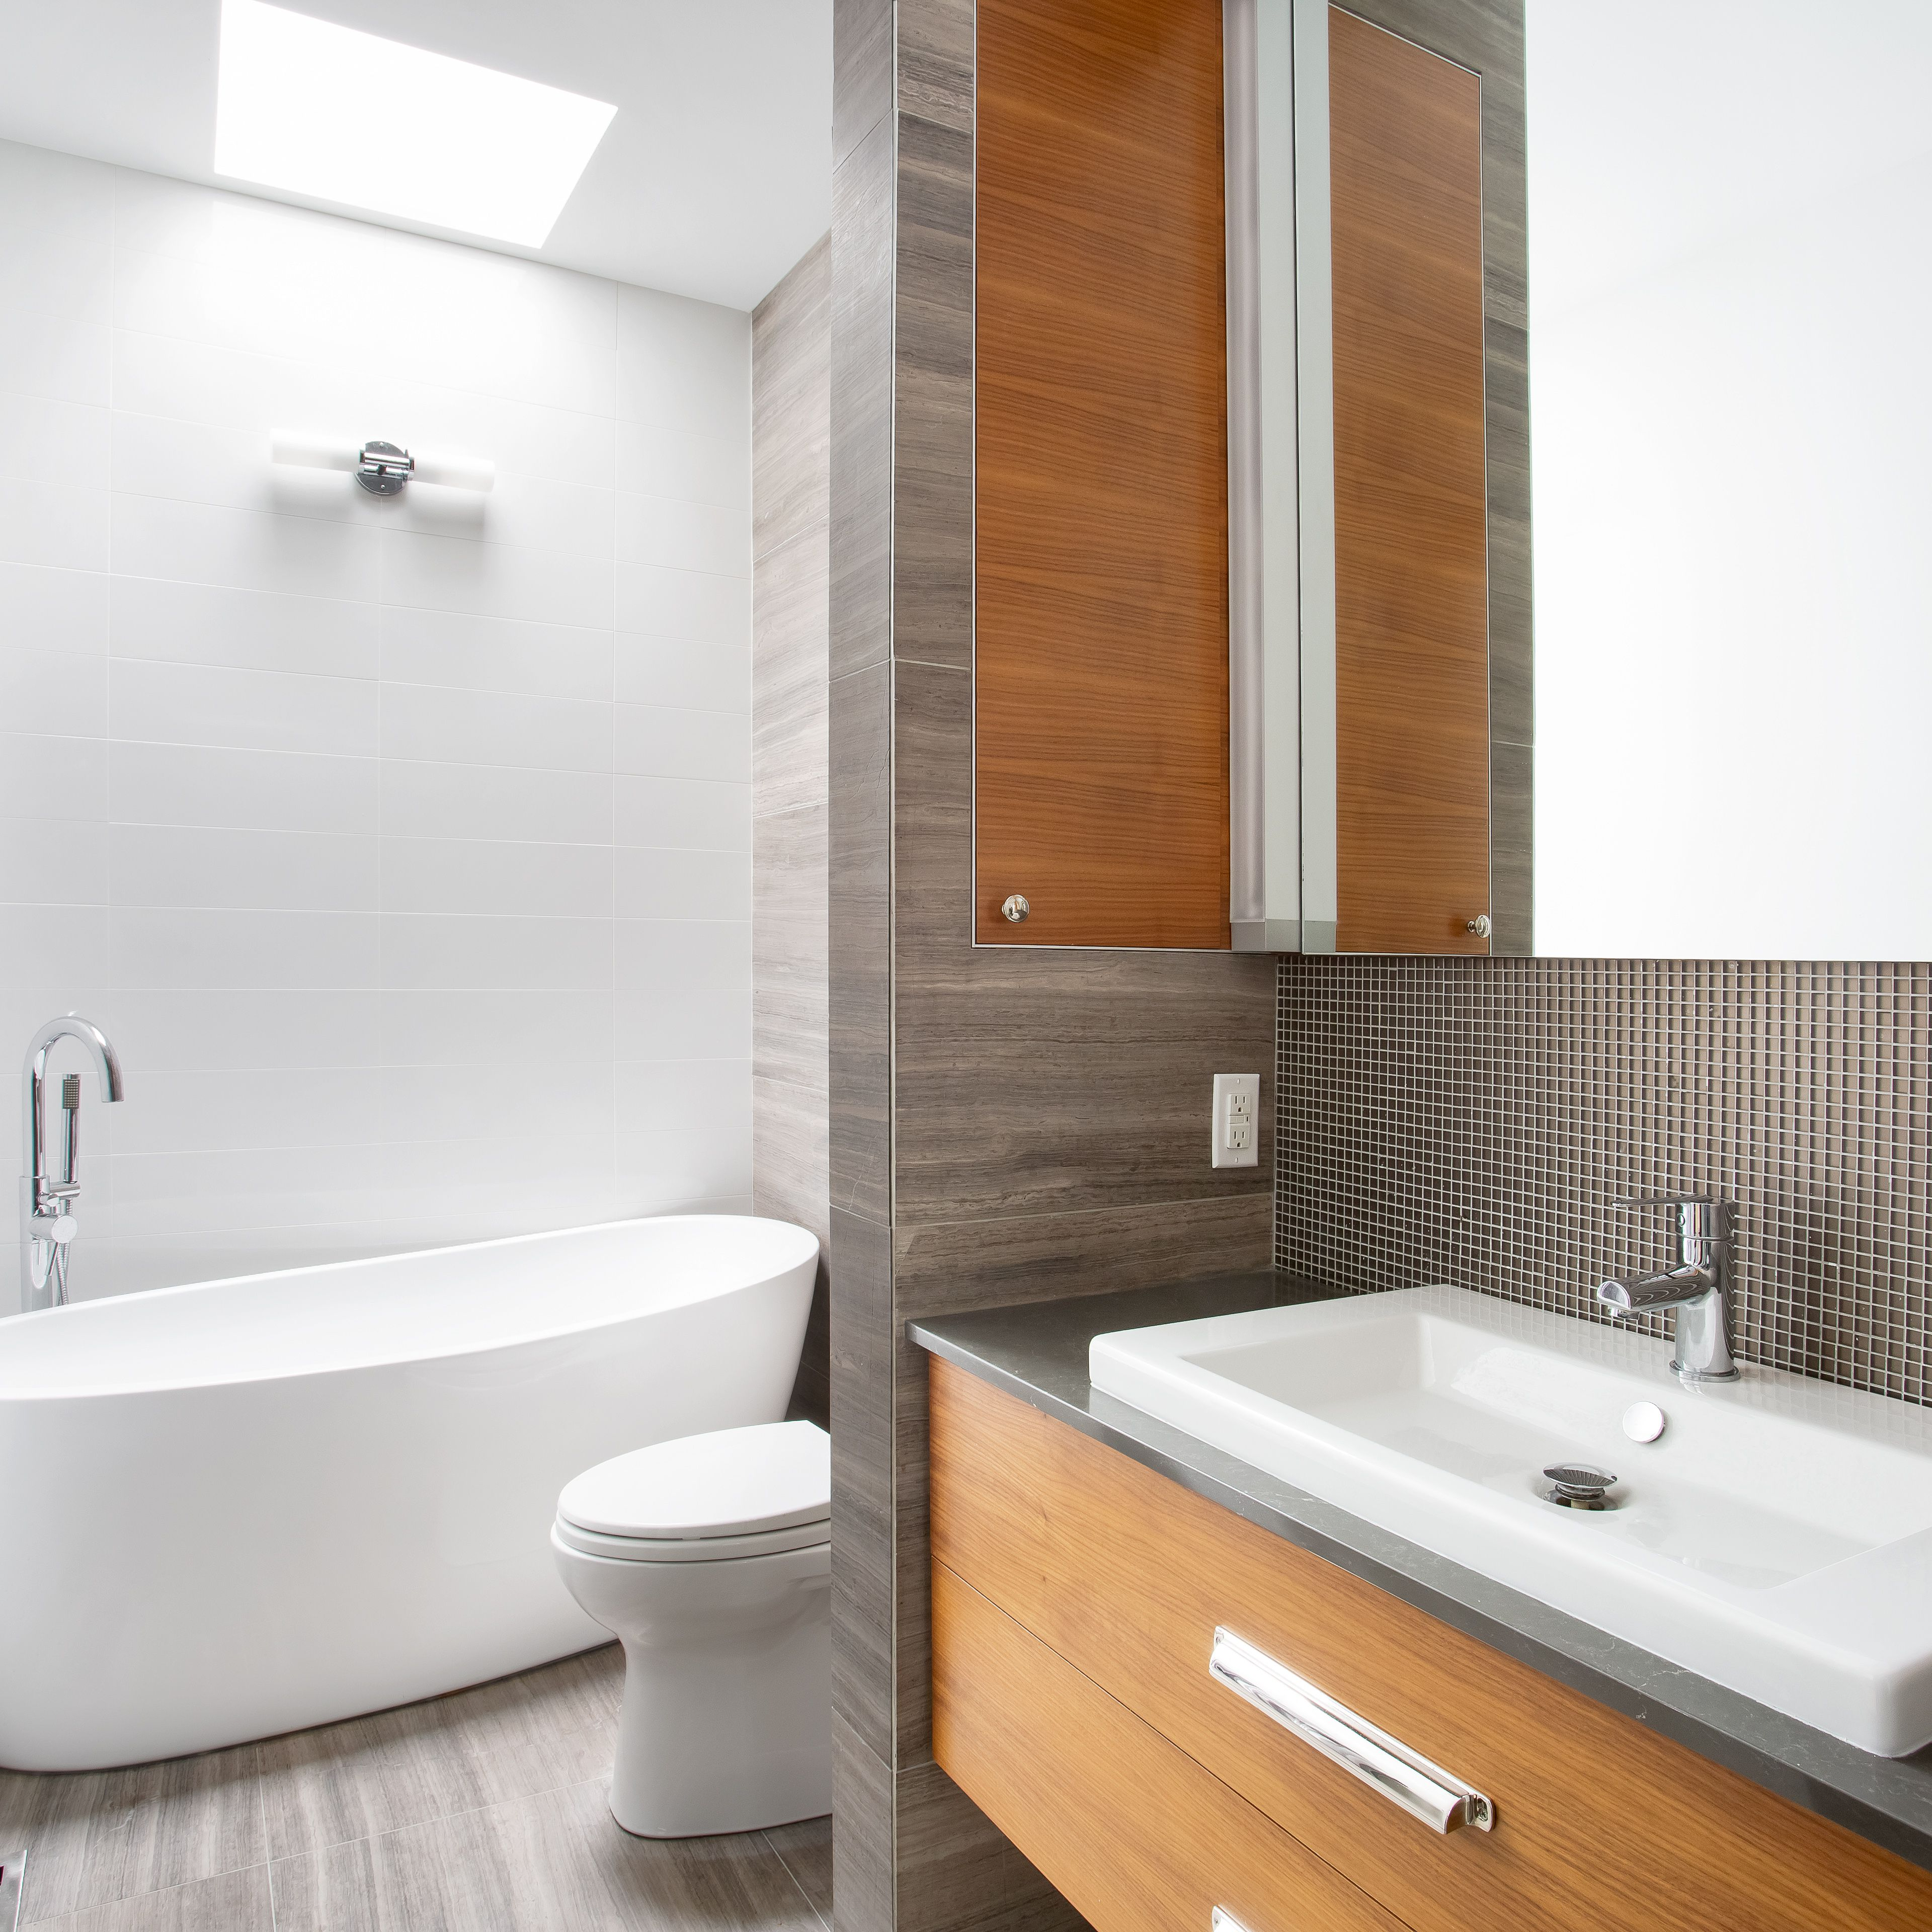 Image of: 11 Amazing Before And After Bathroom Remodels